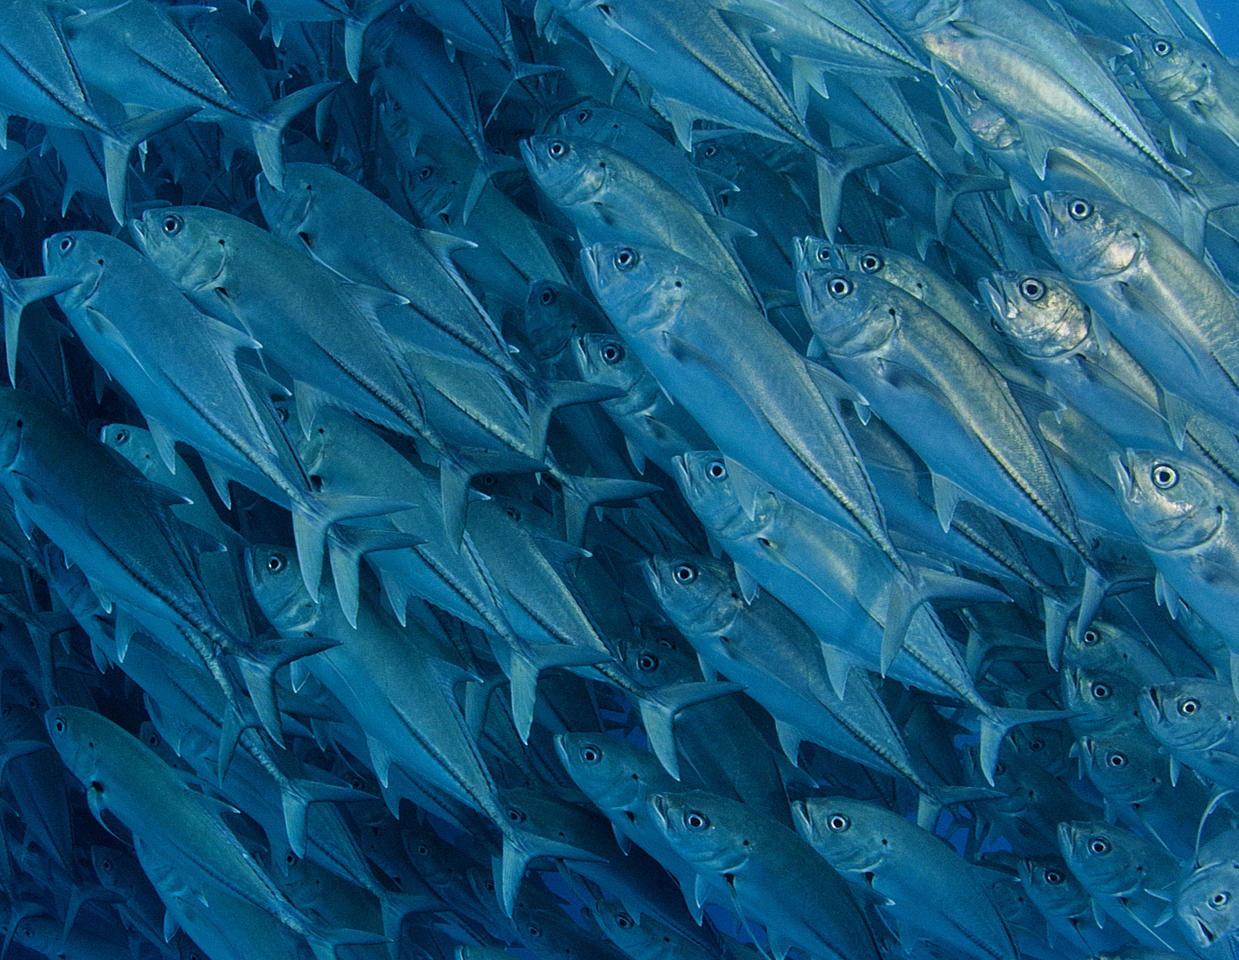 PIC BY OCTAVIO ABURTO / CATERS NEWS - (PICTURED A close-up of the fish) - Smile - its the school photo! This is the hilarious moment a marine photographer managed to capture hundreds of wide-eyed fish apparently posing for a picture. Californian photographer and conservationist Octavio Aburto had spent years photographing the school in Cabo Pulmo National Park, Mexico - and had been trying to capture this exact shot for three years. The Bigeye travellies fish gather in their thousands in the oceans during courtship. SEE CATERS COPY